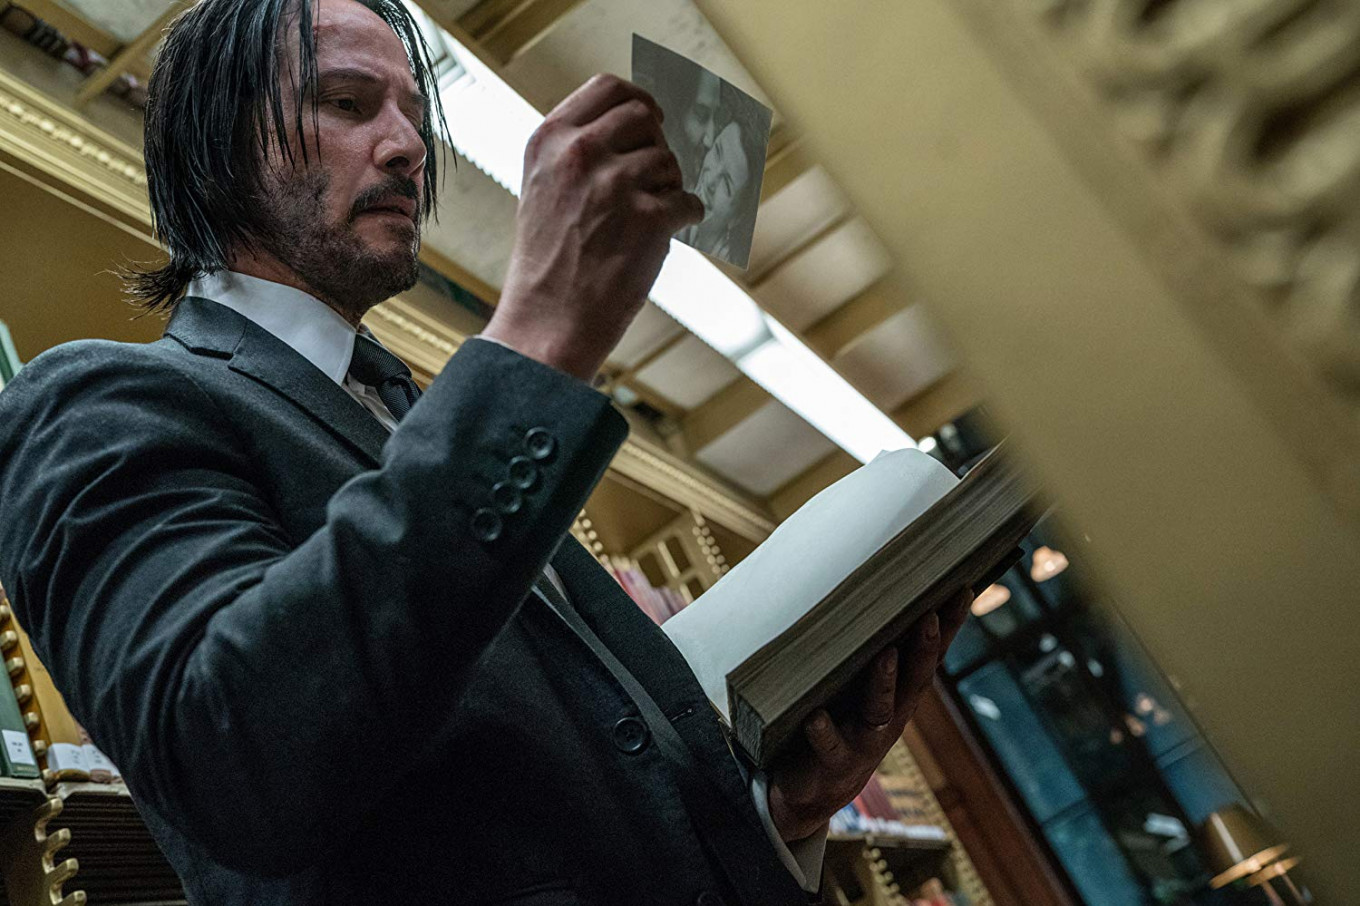 'John Wick: Chapter 3 - Parabellum' is a High-Octane Blast to the Cerebellum